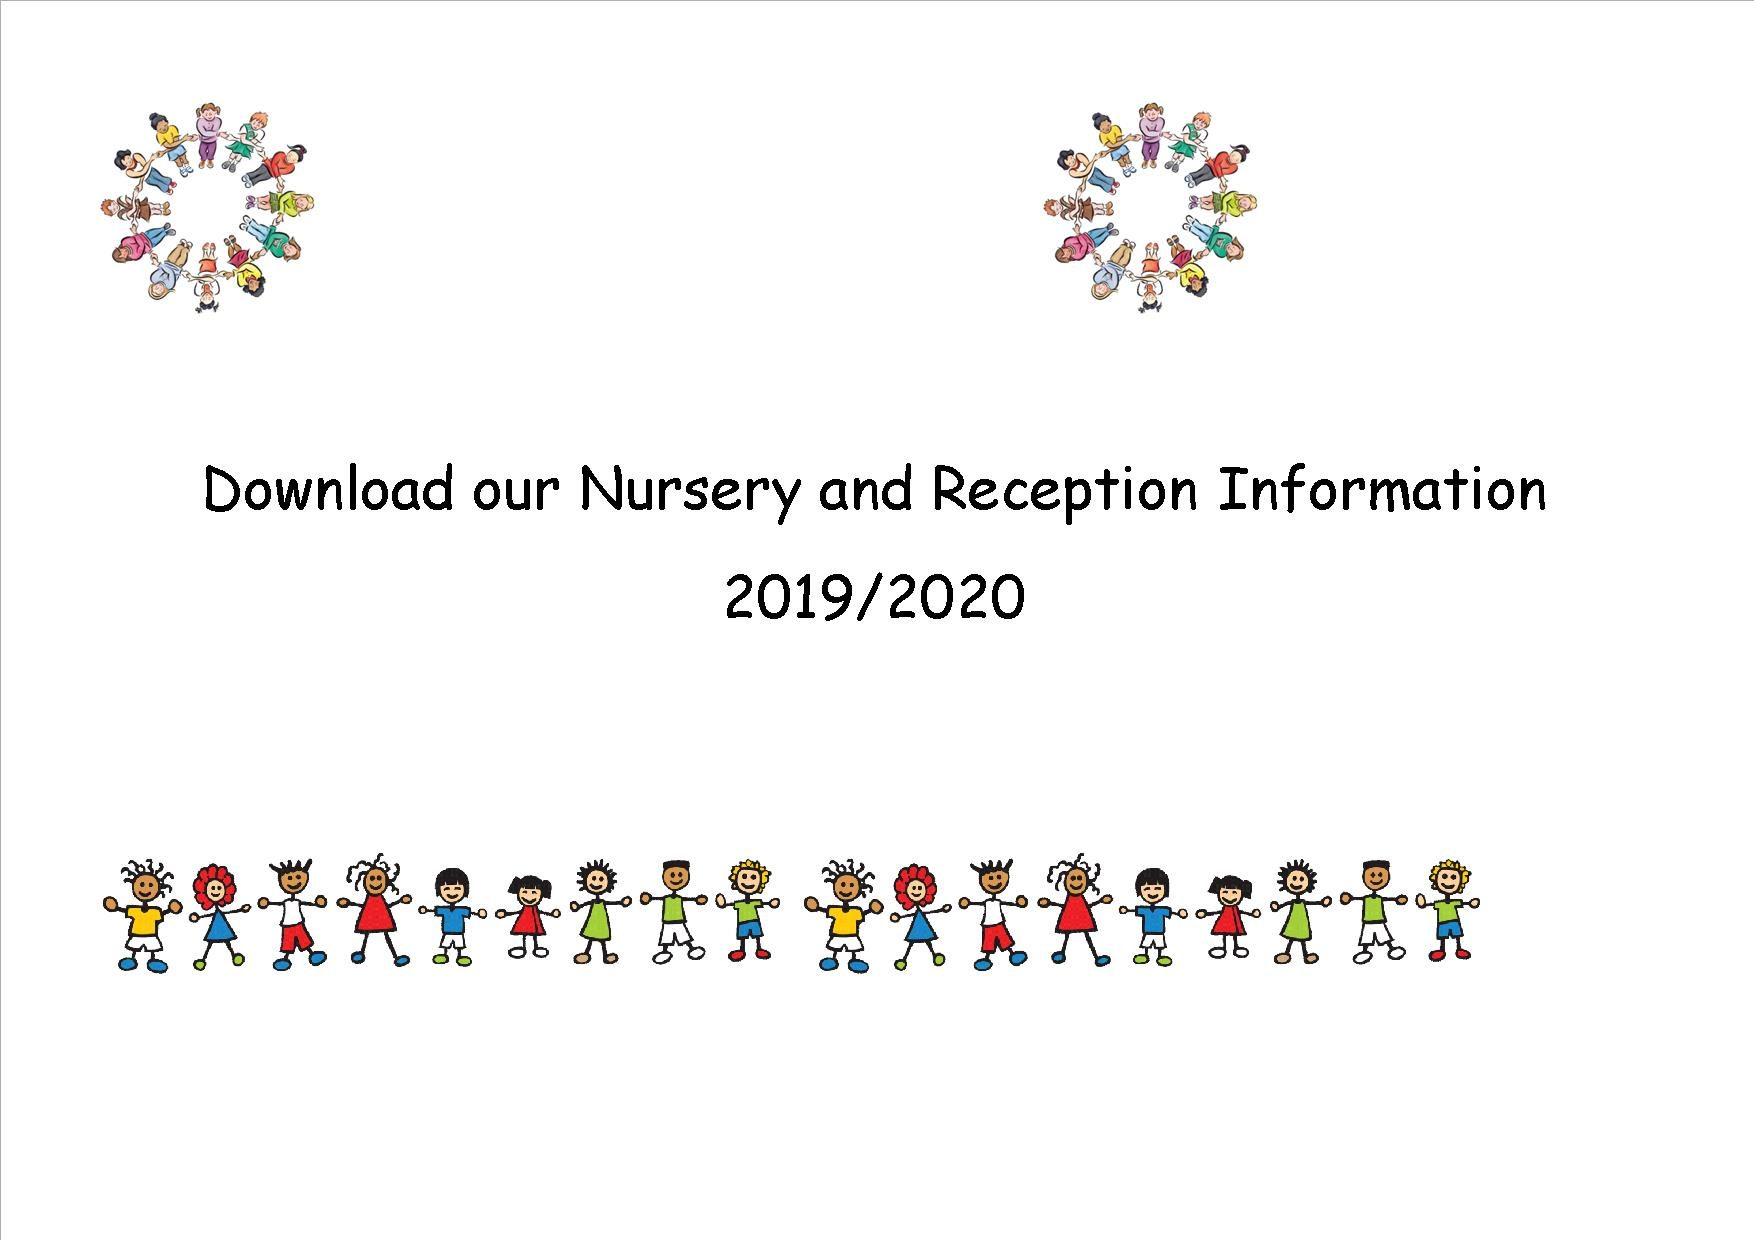 Download our Nursery and Reception Information